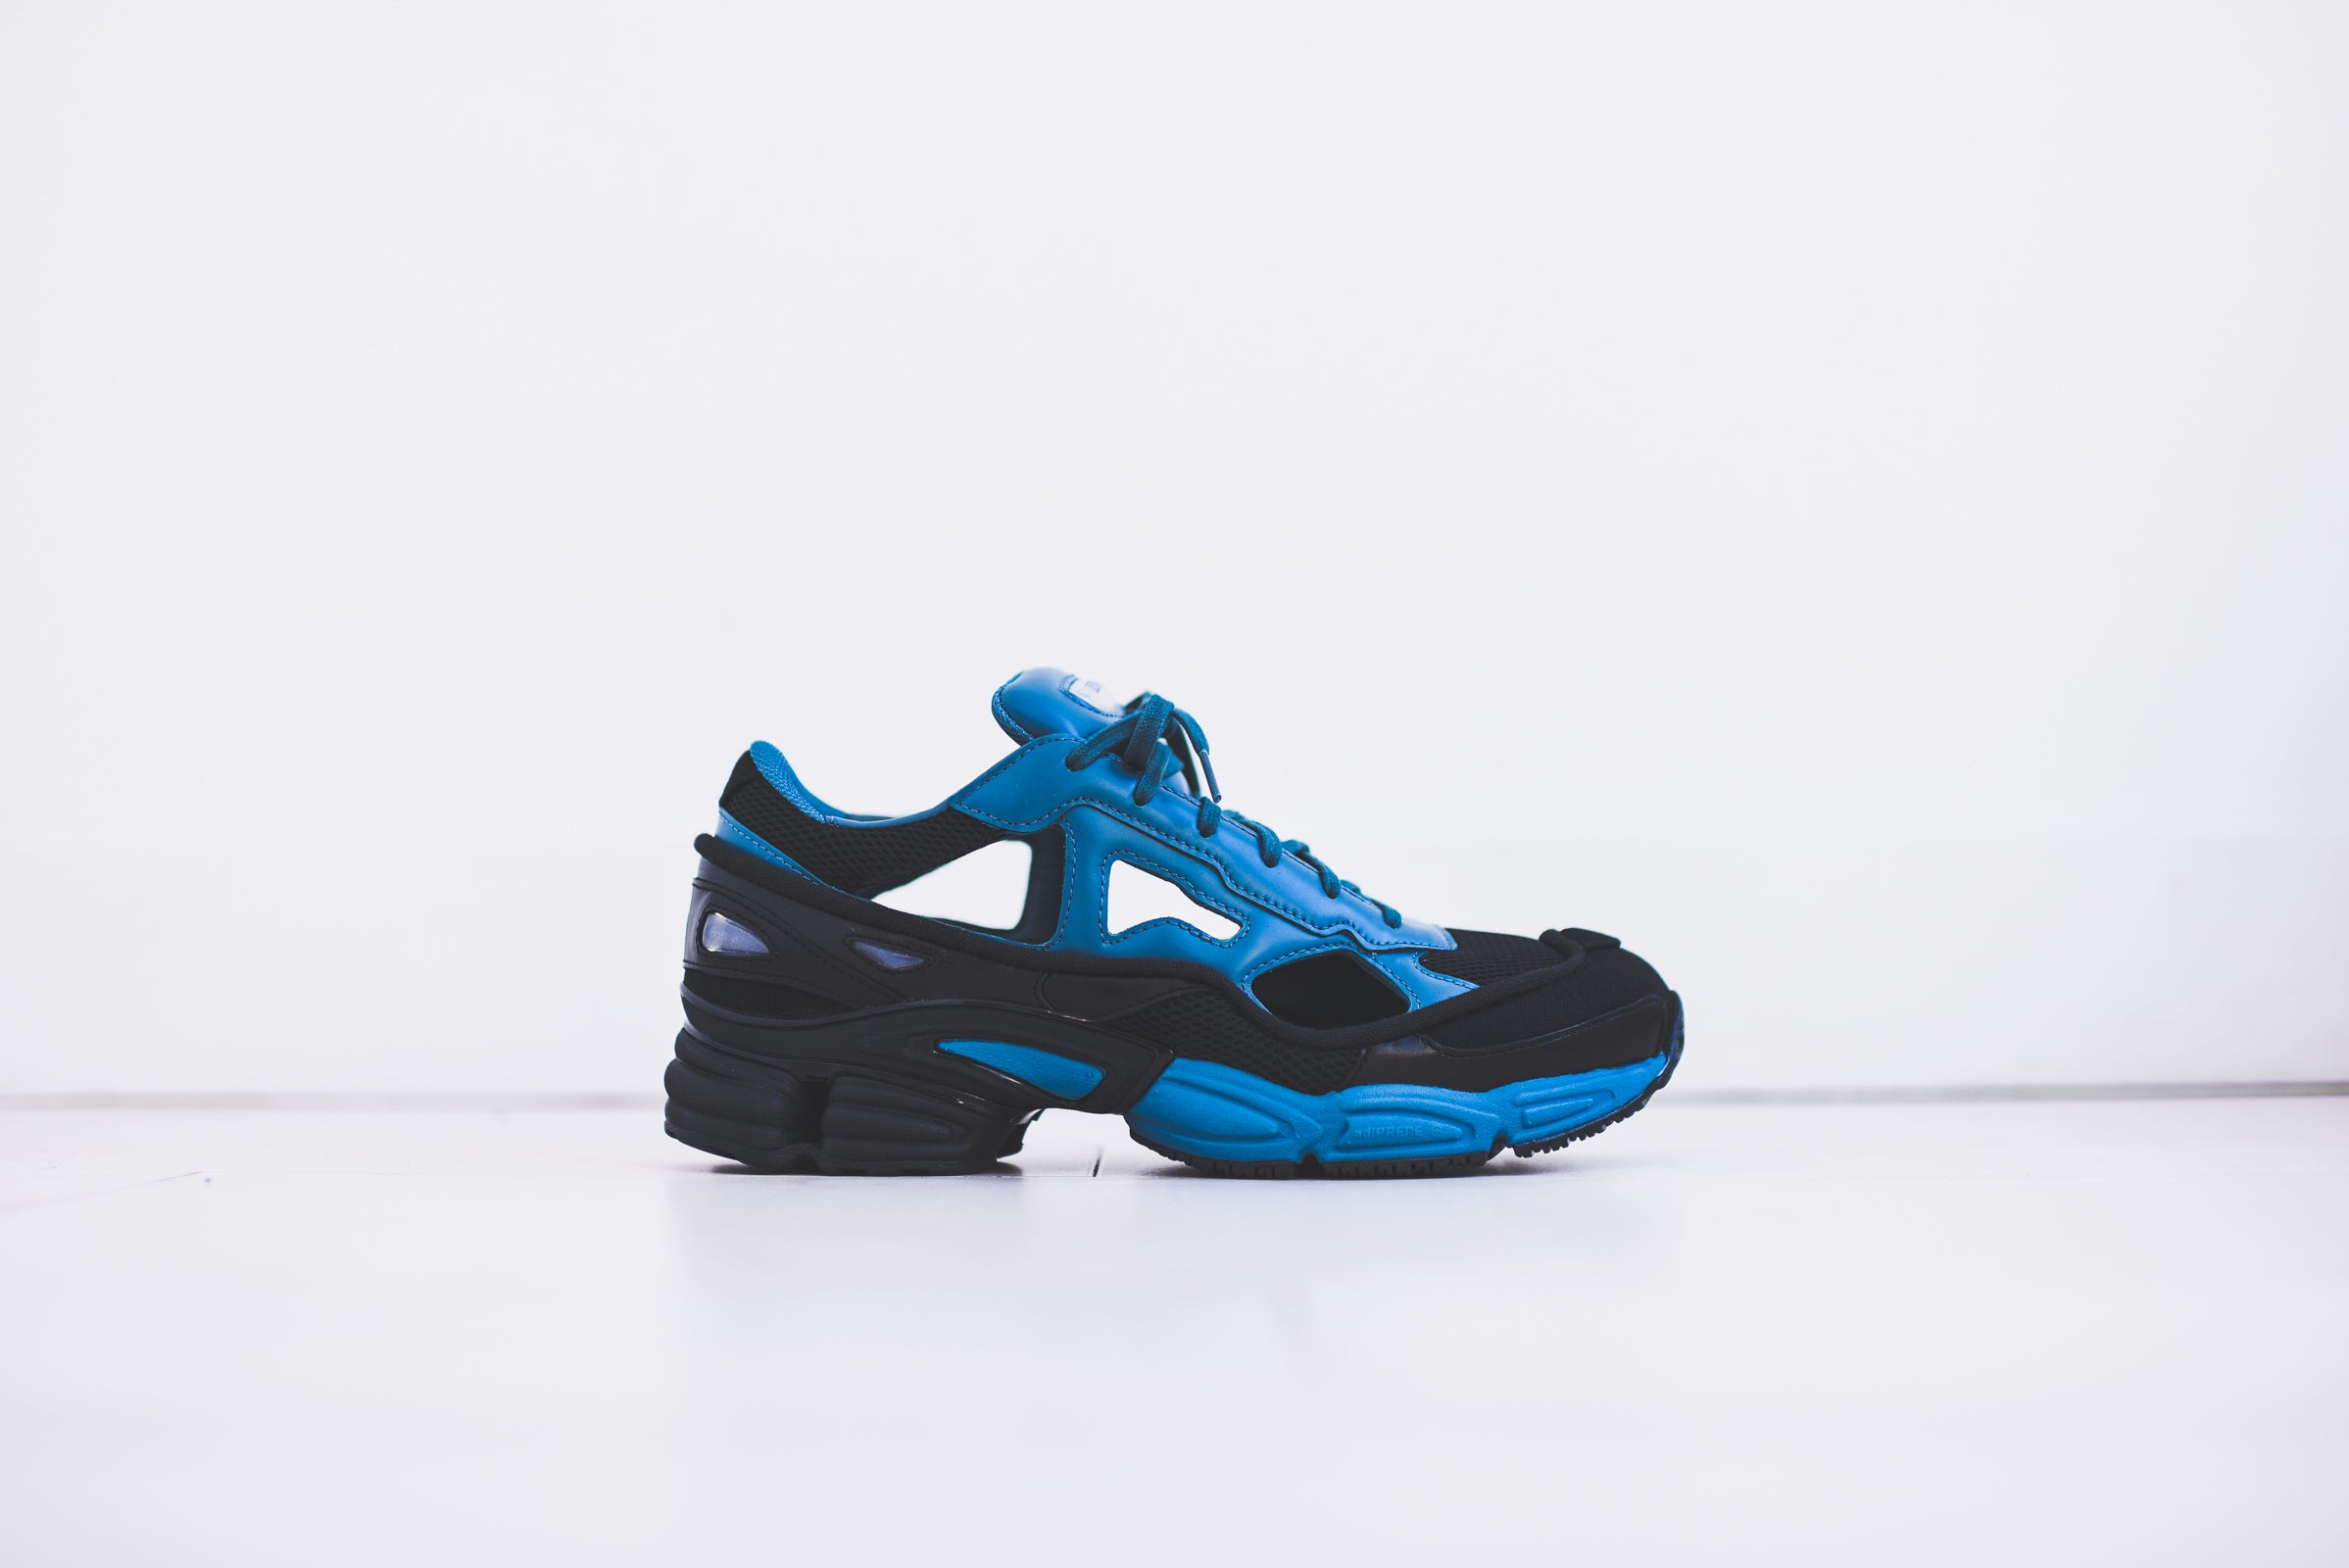 Adidas By Raf Simons Black And Blue Replicant Ozweego Leather Sneakers where can i order free shipping 2015 official cheap online IjAvqI